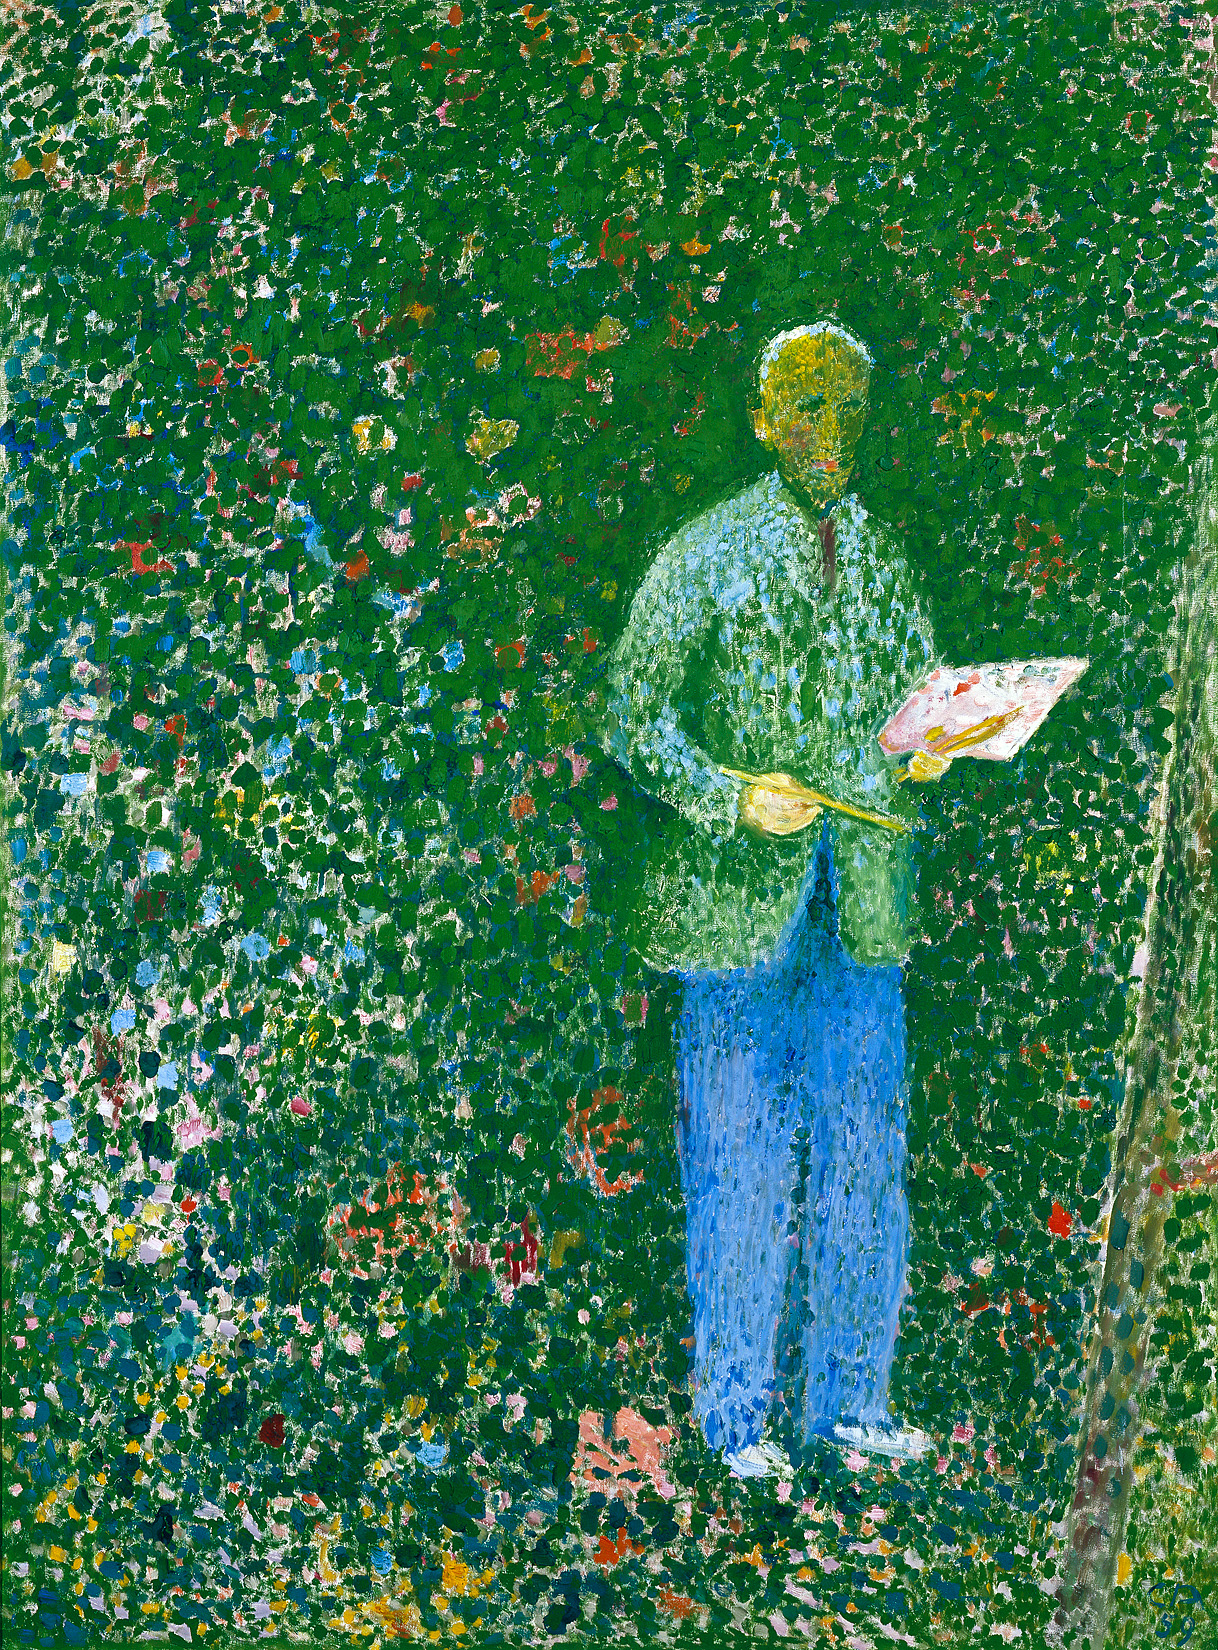 Cuno Amiet, The Painter, 1959